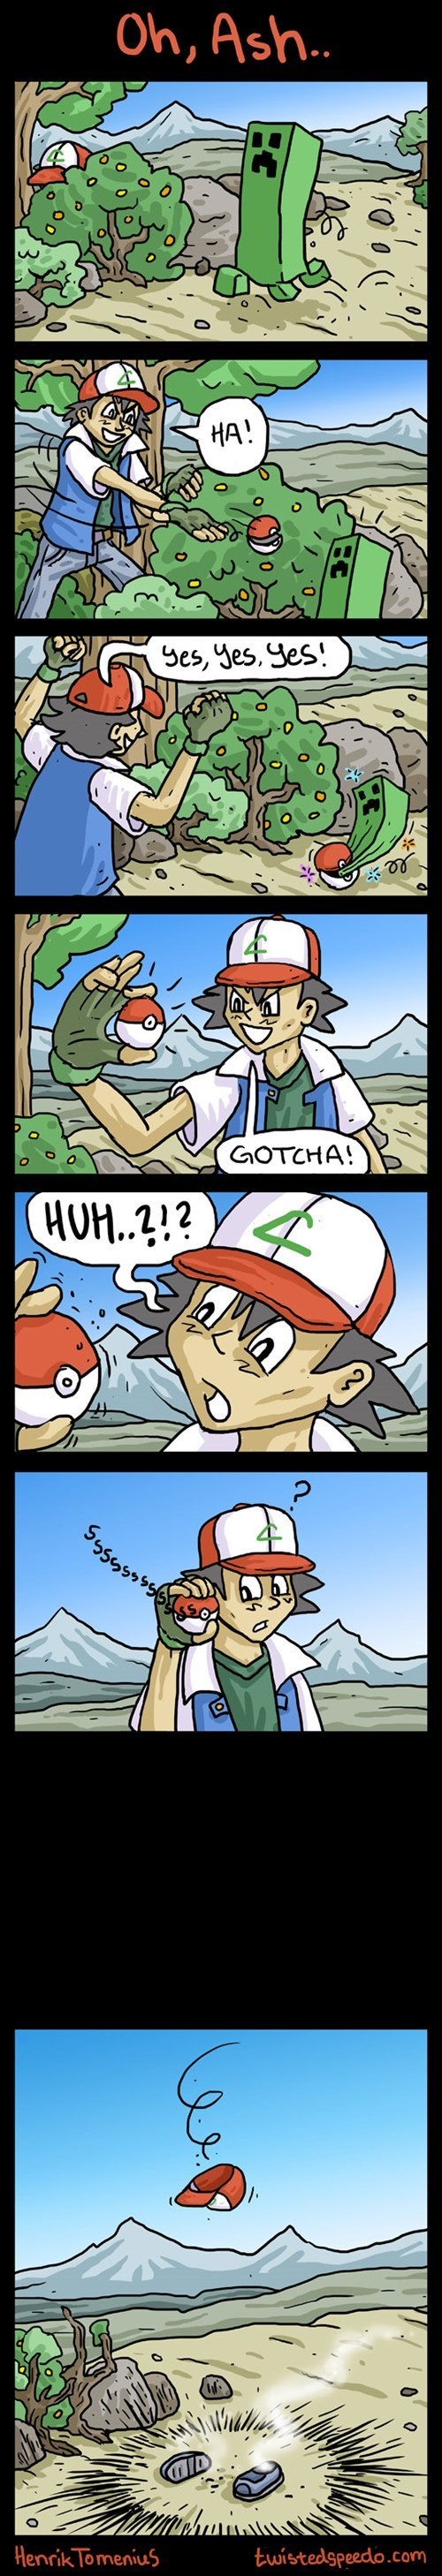 minecraft Pokémon web comics - 8340675584